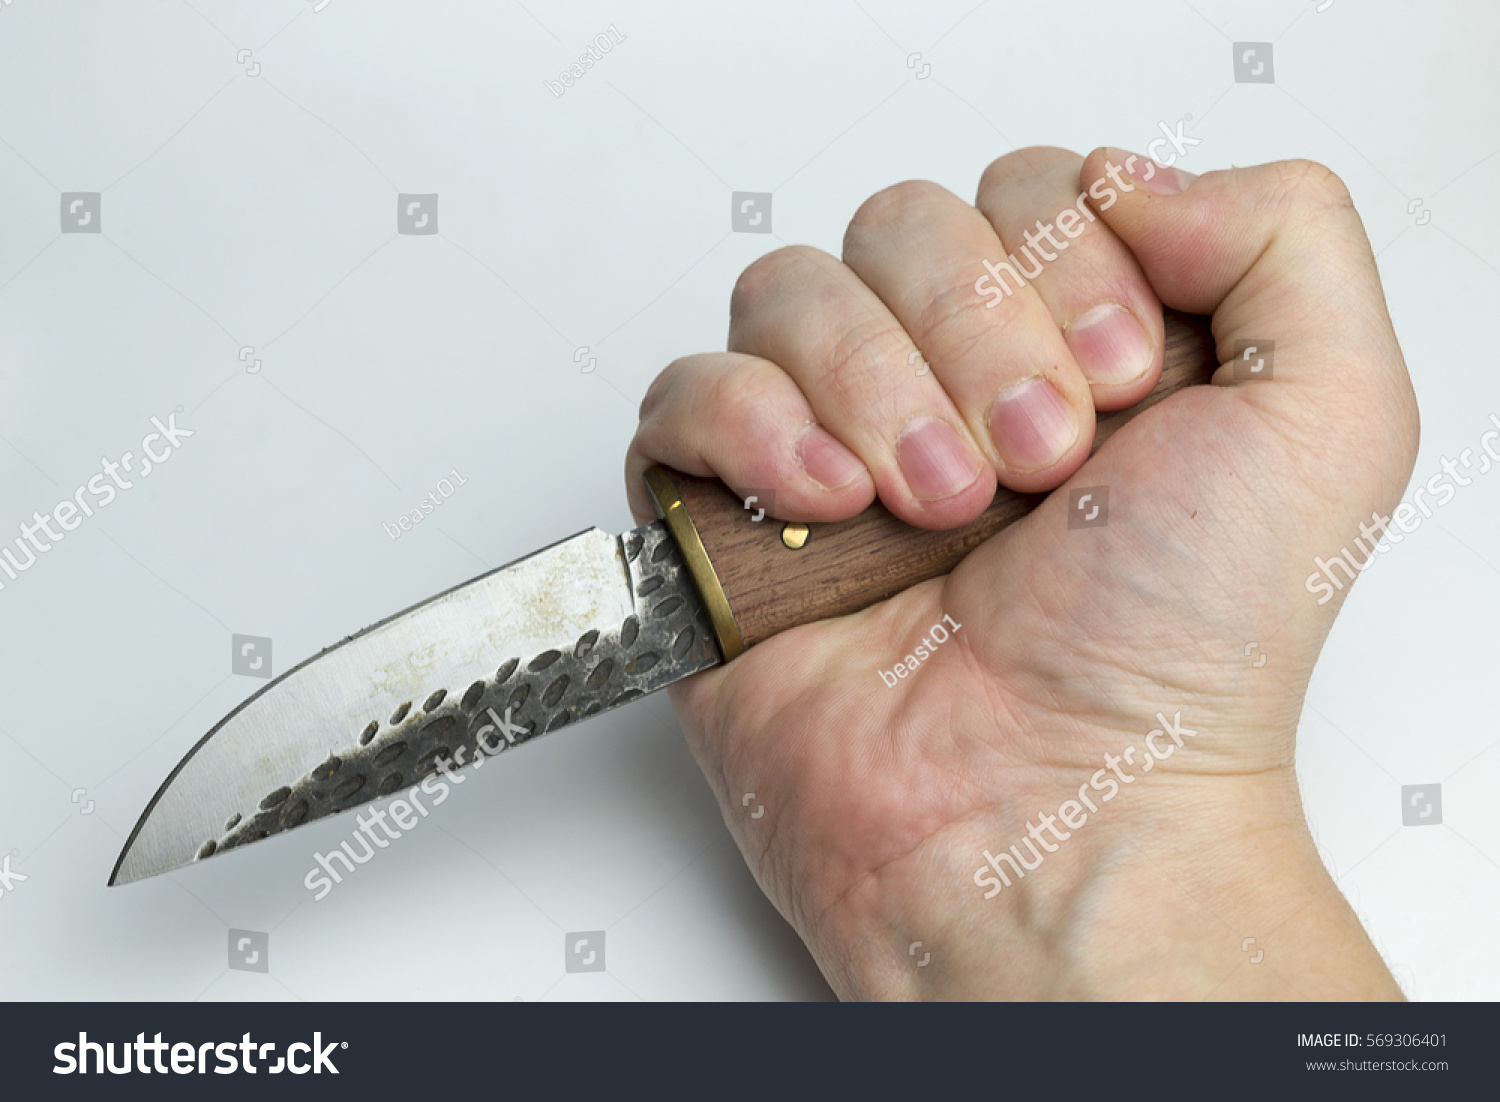 how to hold a cutting knife